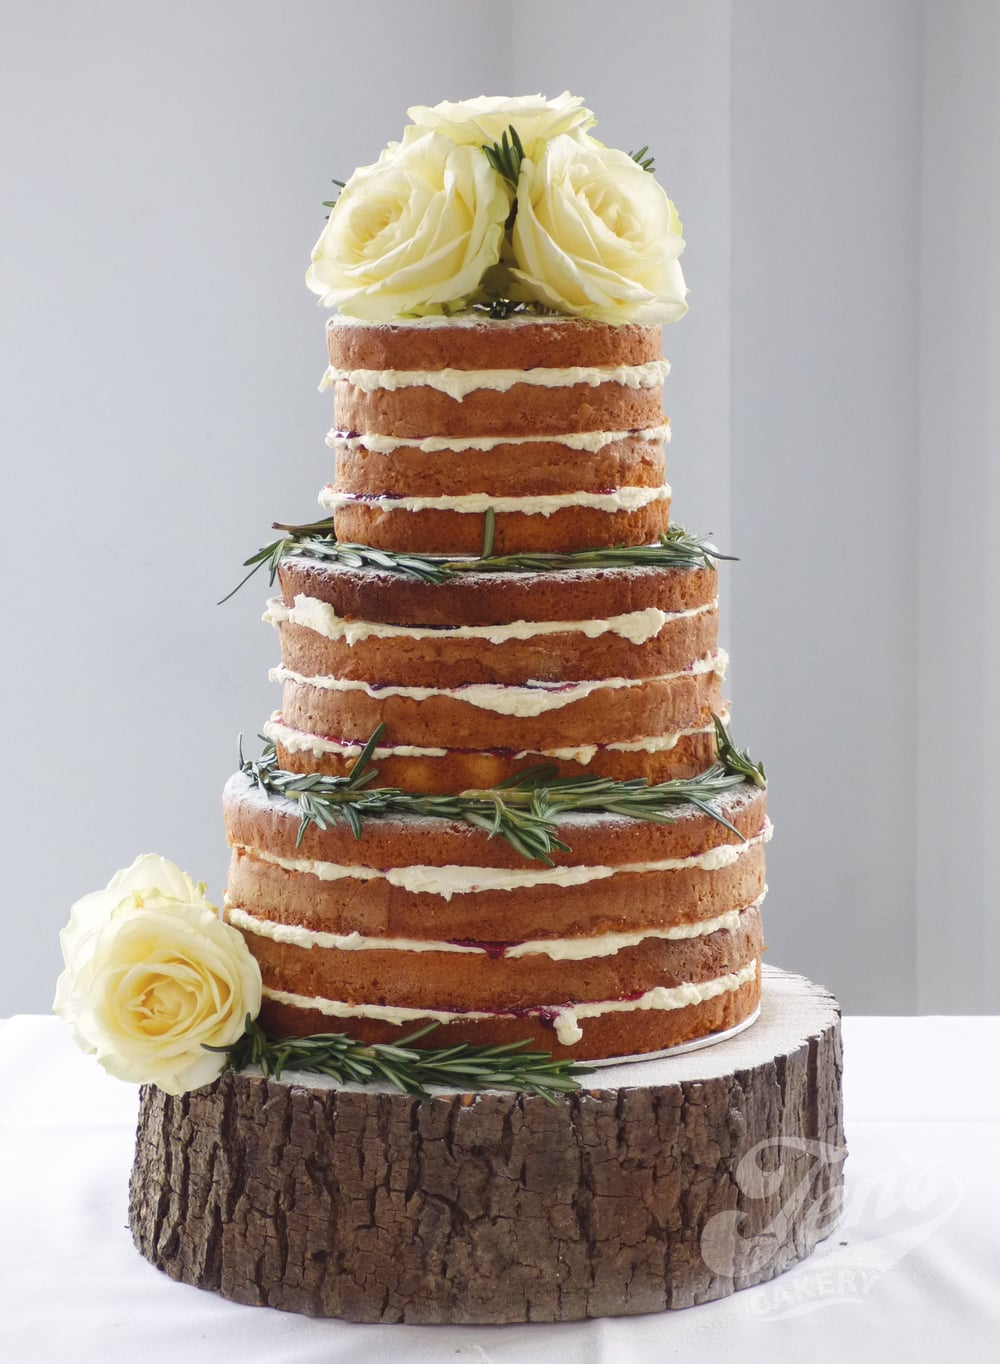 This naked cake looks beautiful with just sprigs of rosemary and fresh roses.